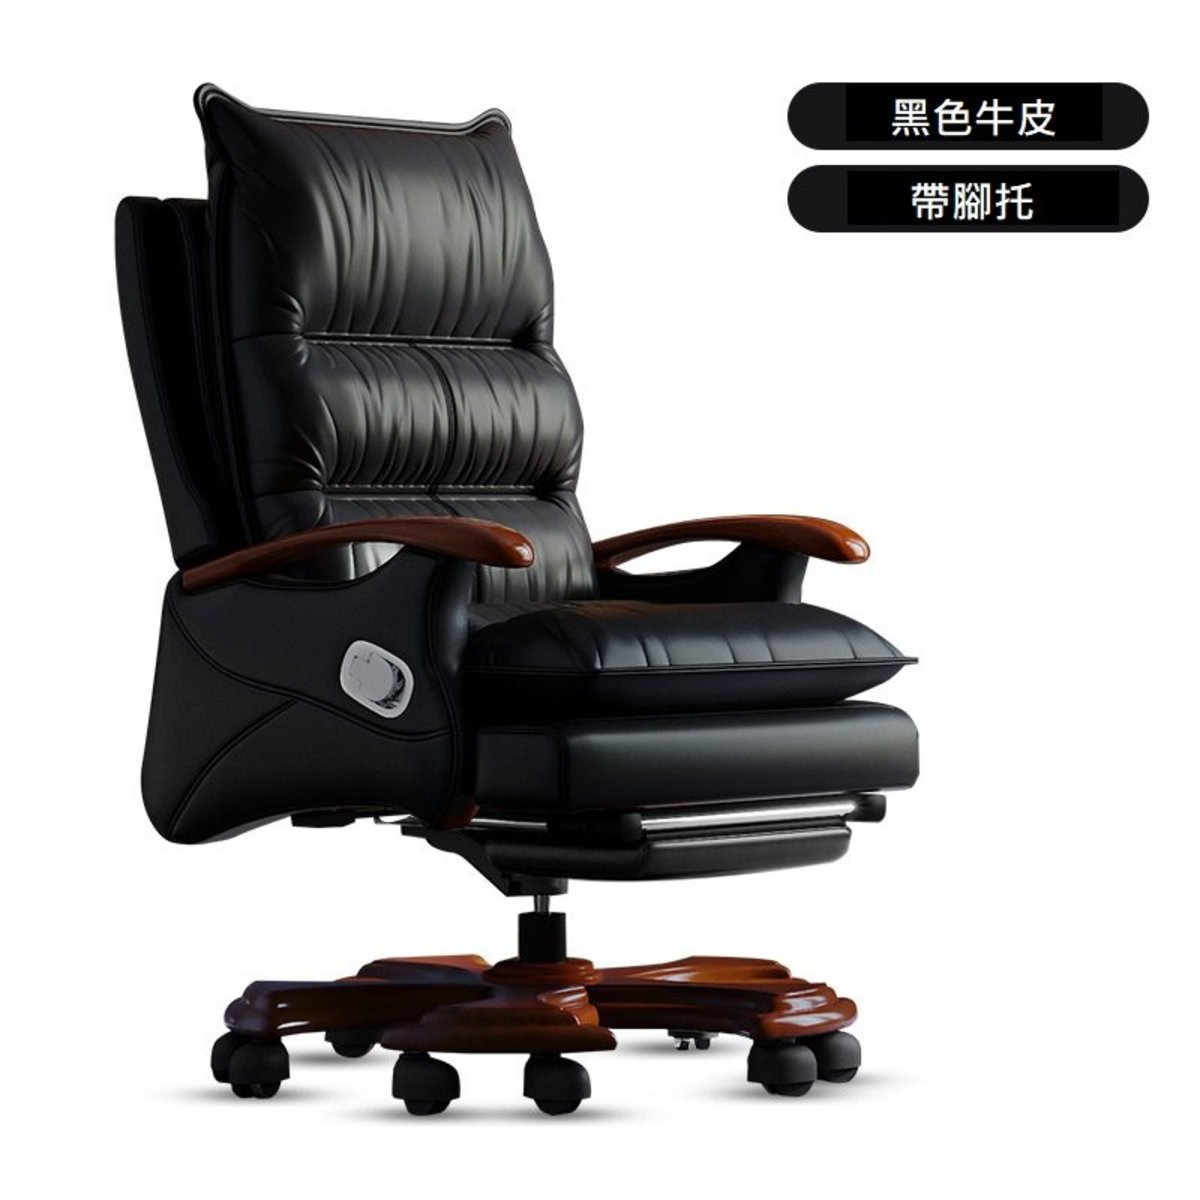 Reclining Leather & Hard Wood Office Chair B28 - Black